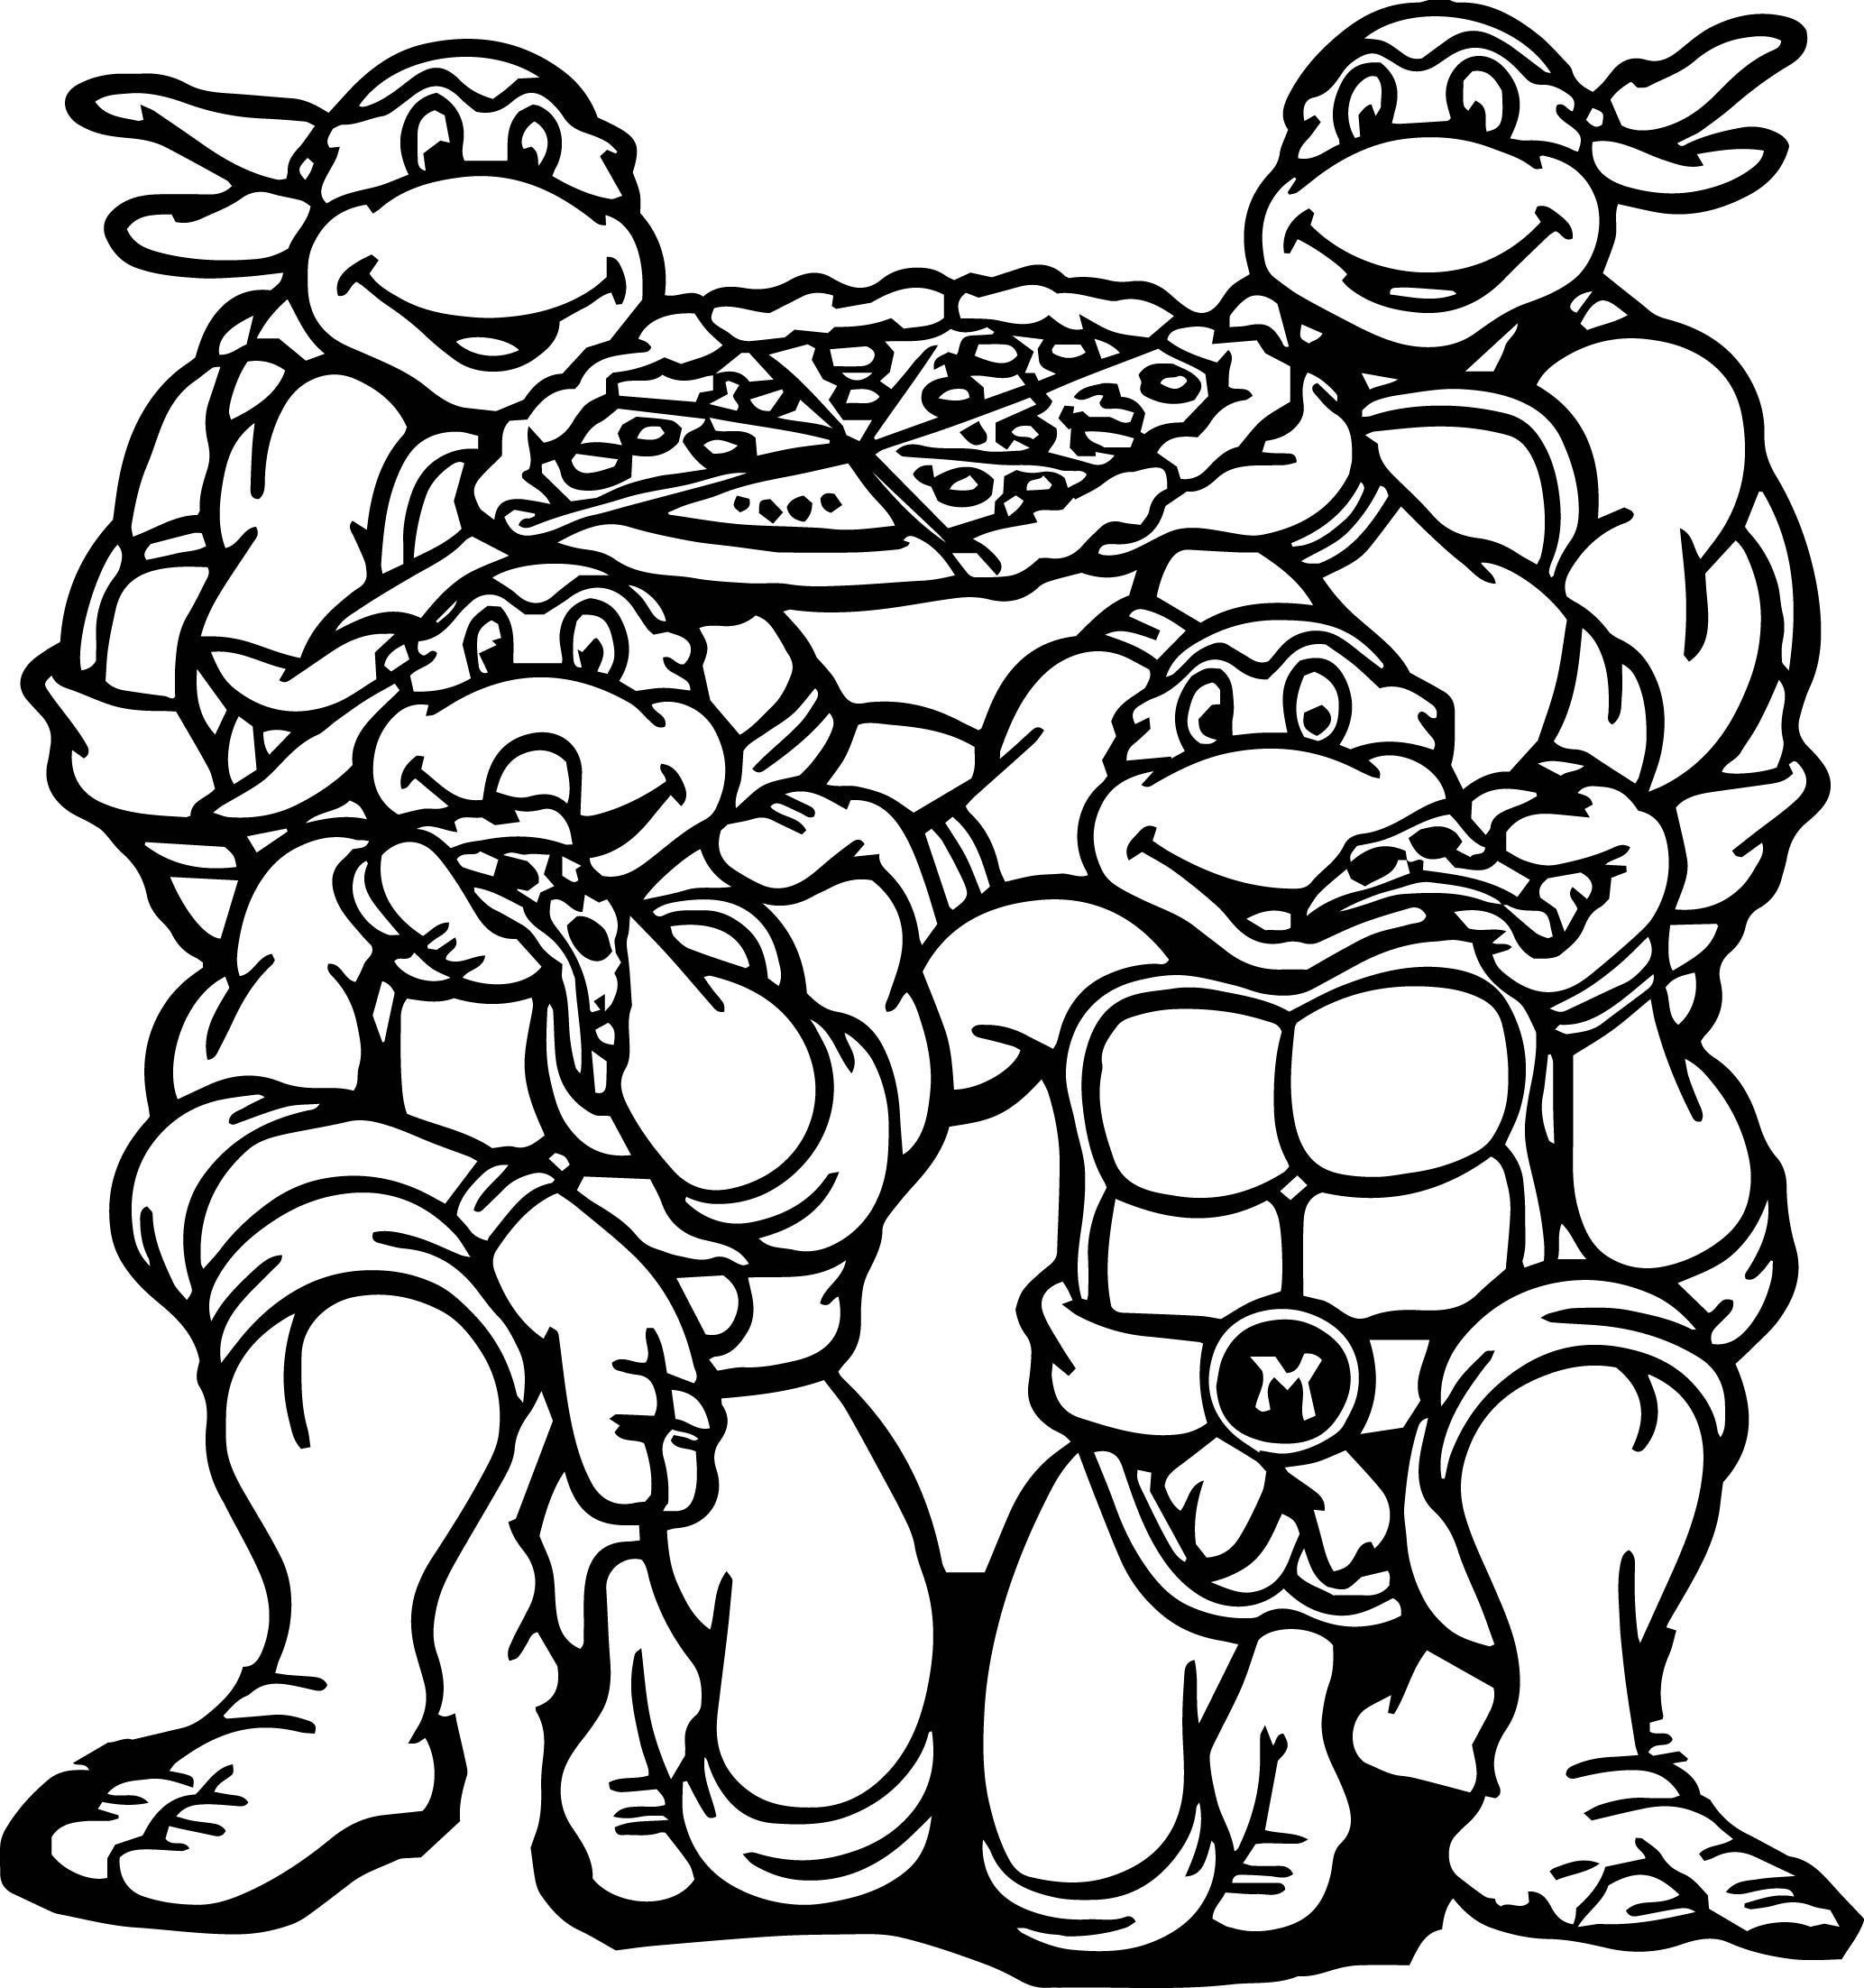 Nickalodeon Coloring Pages To Print